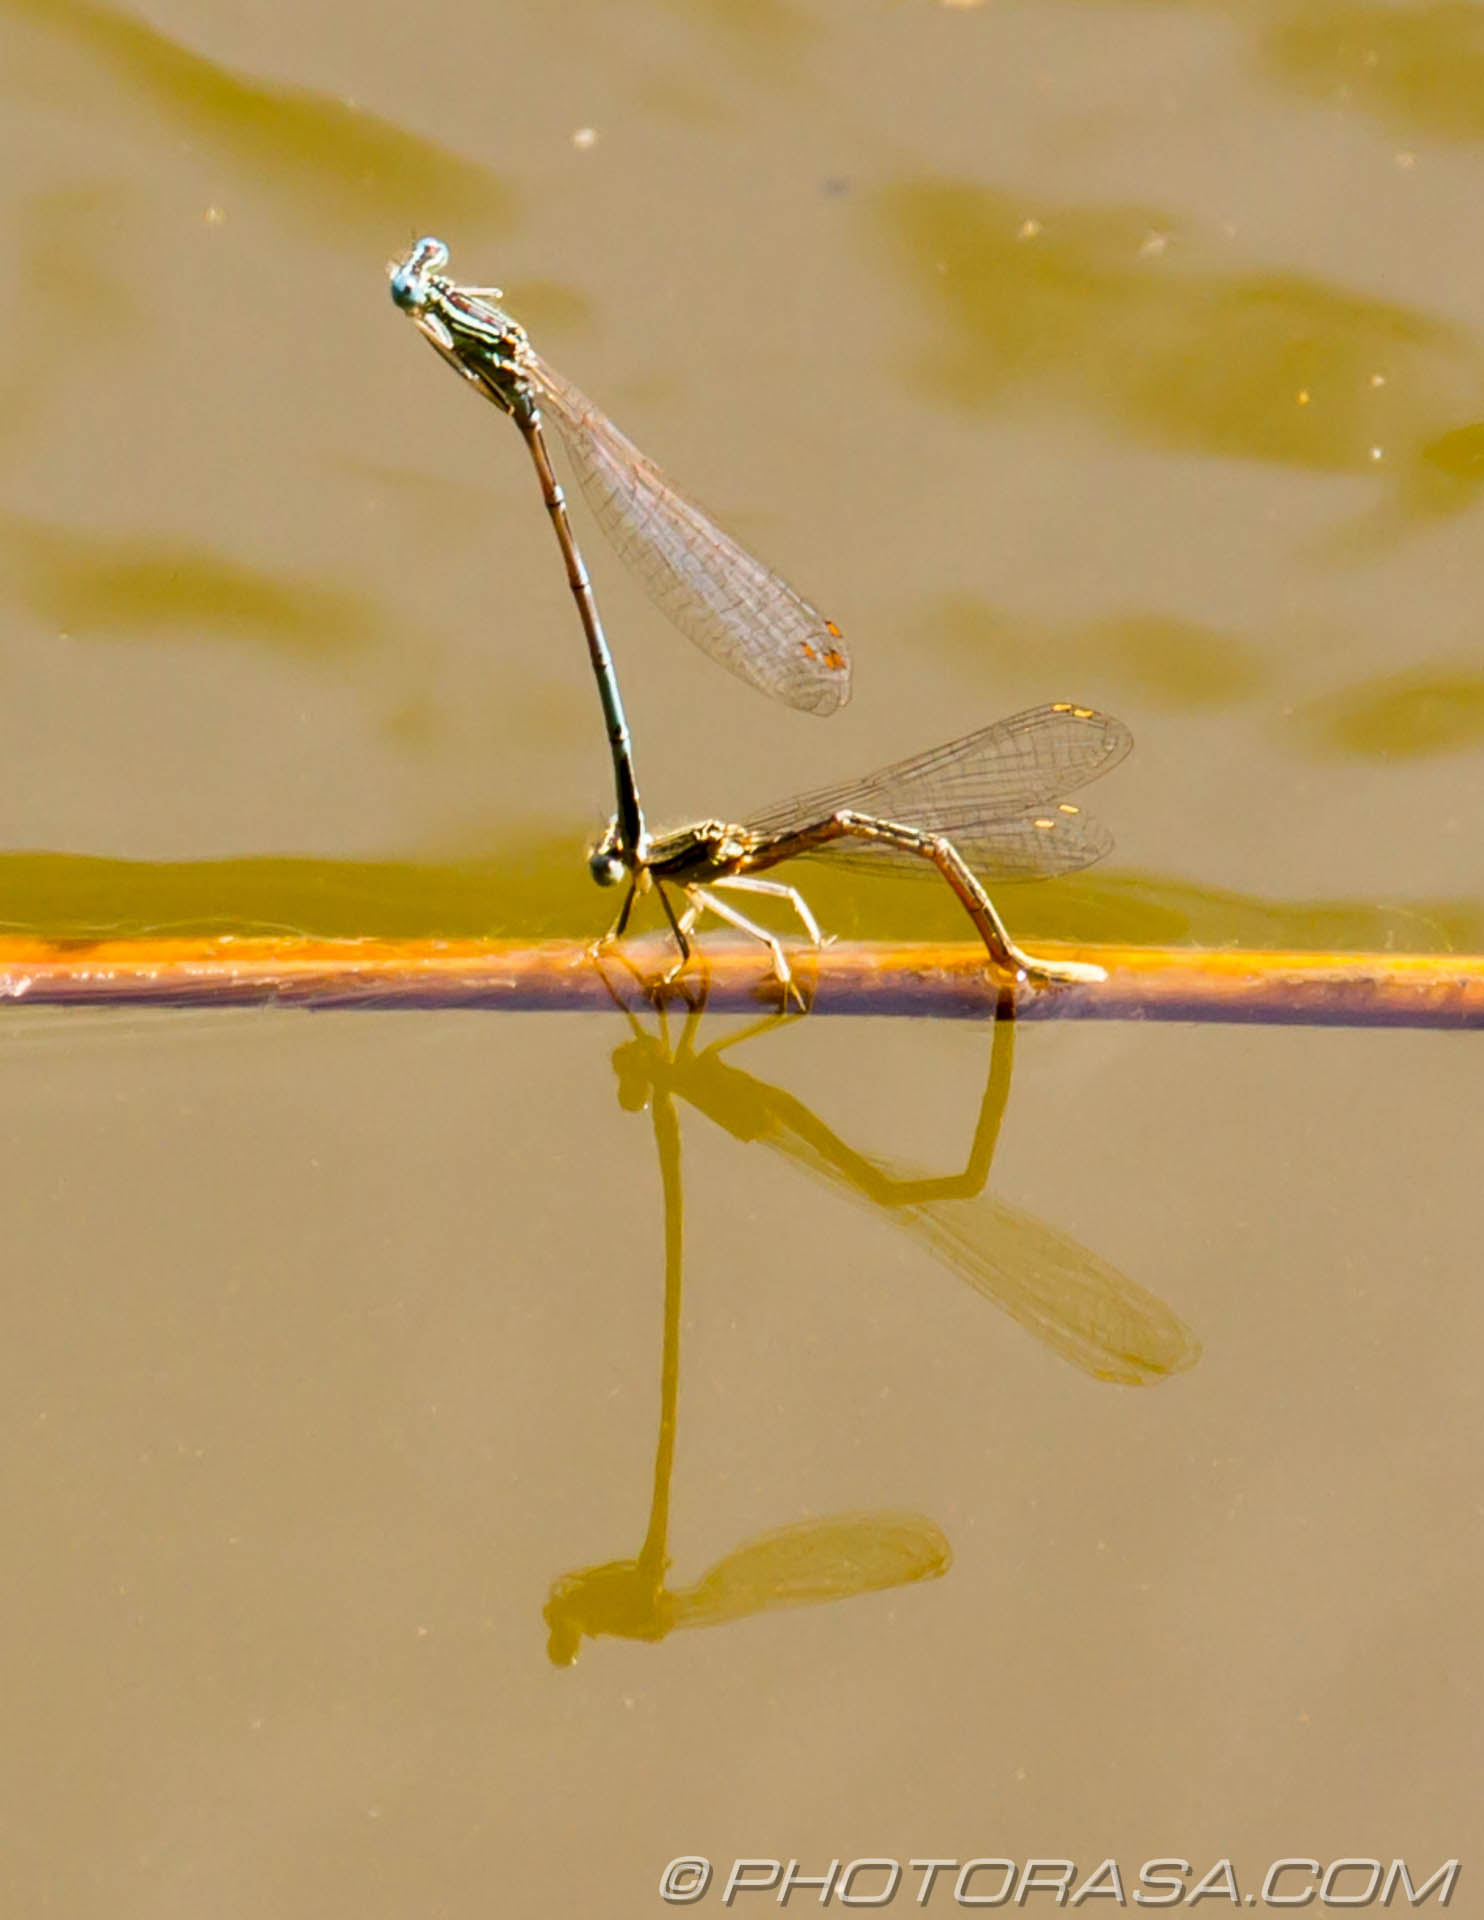 https://photorasa.com/damselflies/damselflies-mating/